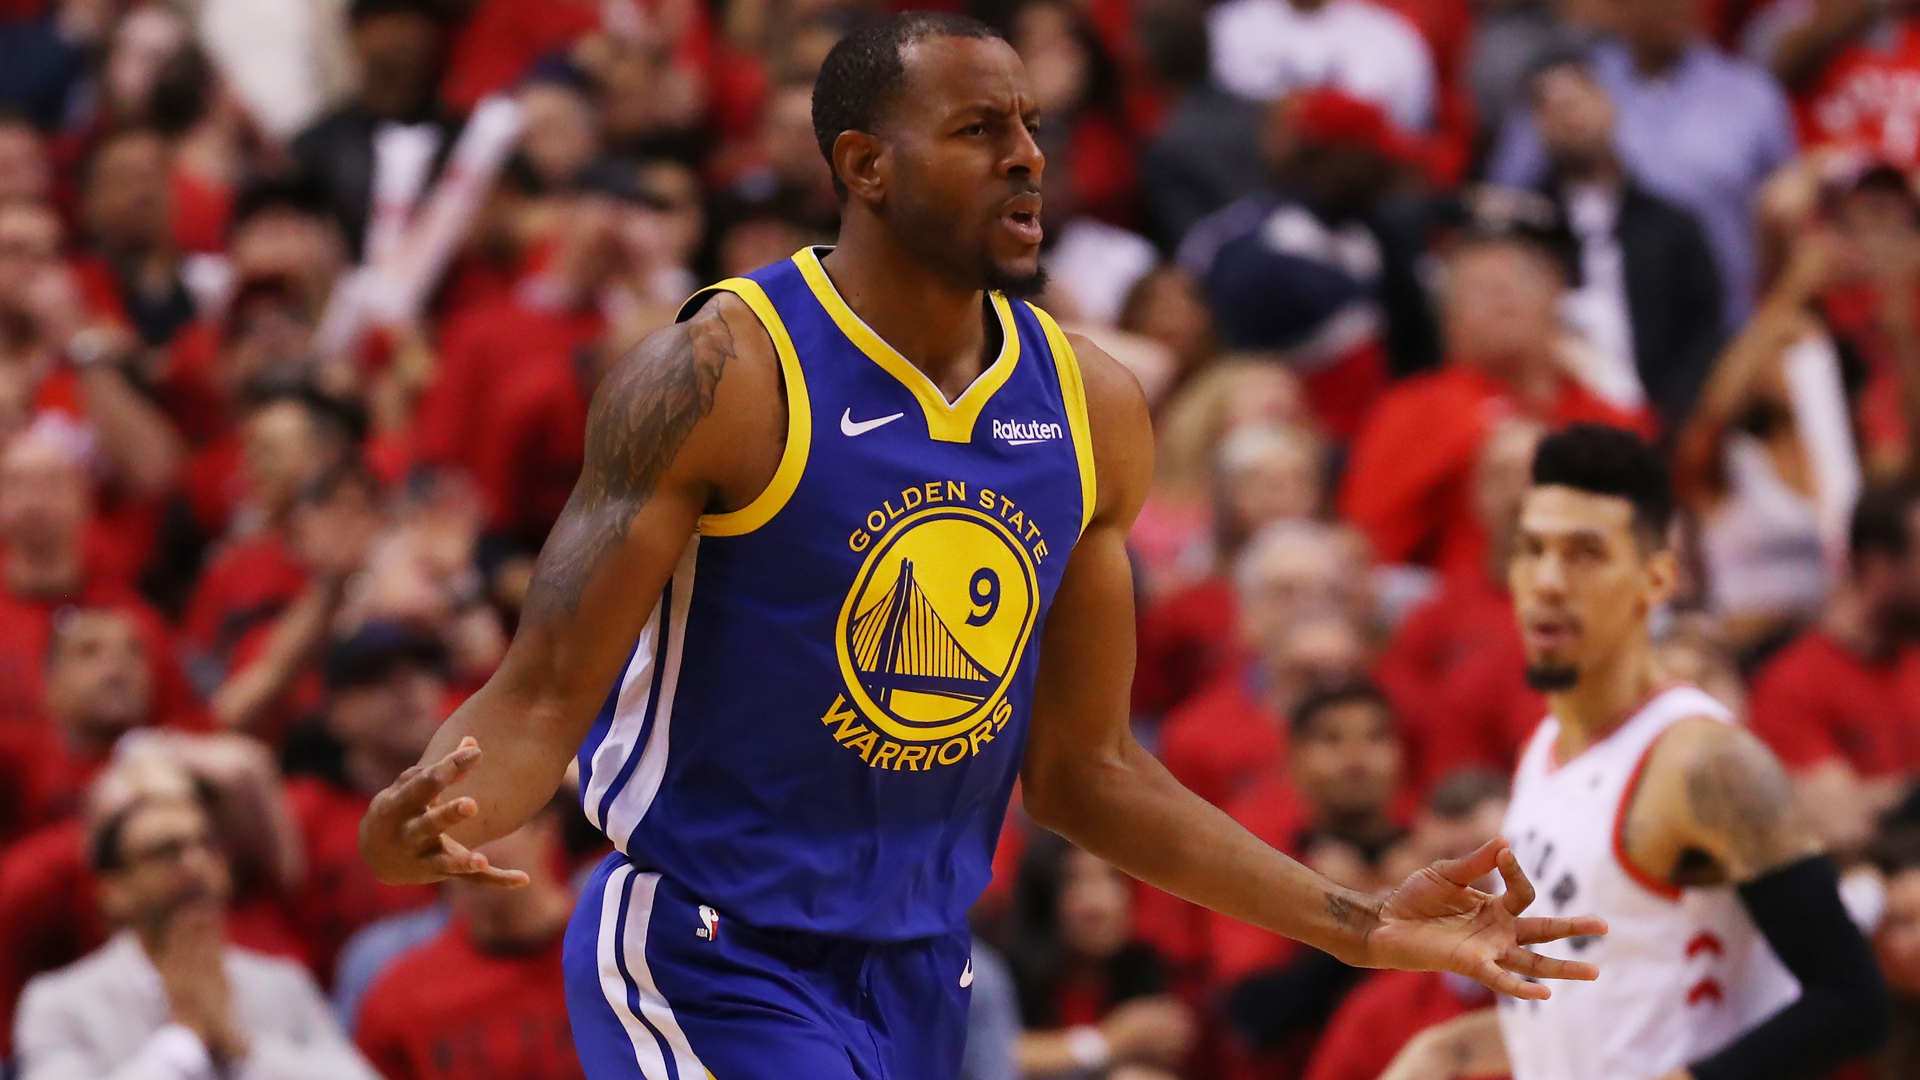 NBA trade rumors: Grizzlies want to move Andre Iguodala for first-round pick